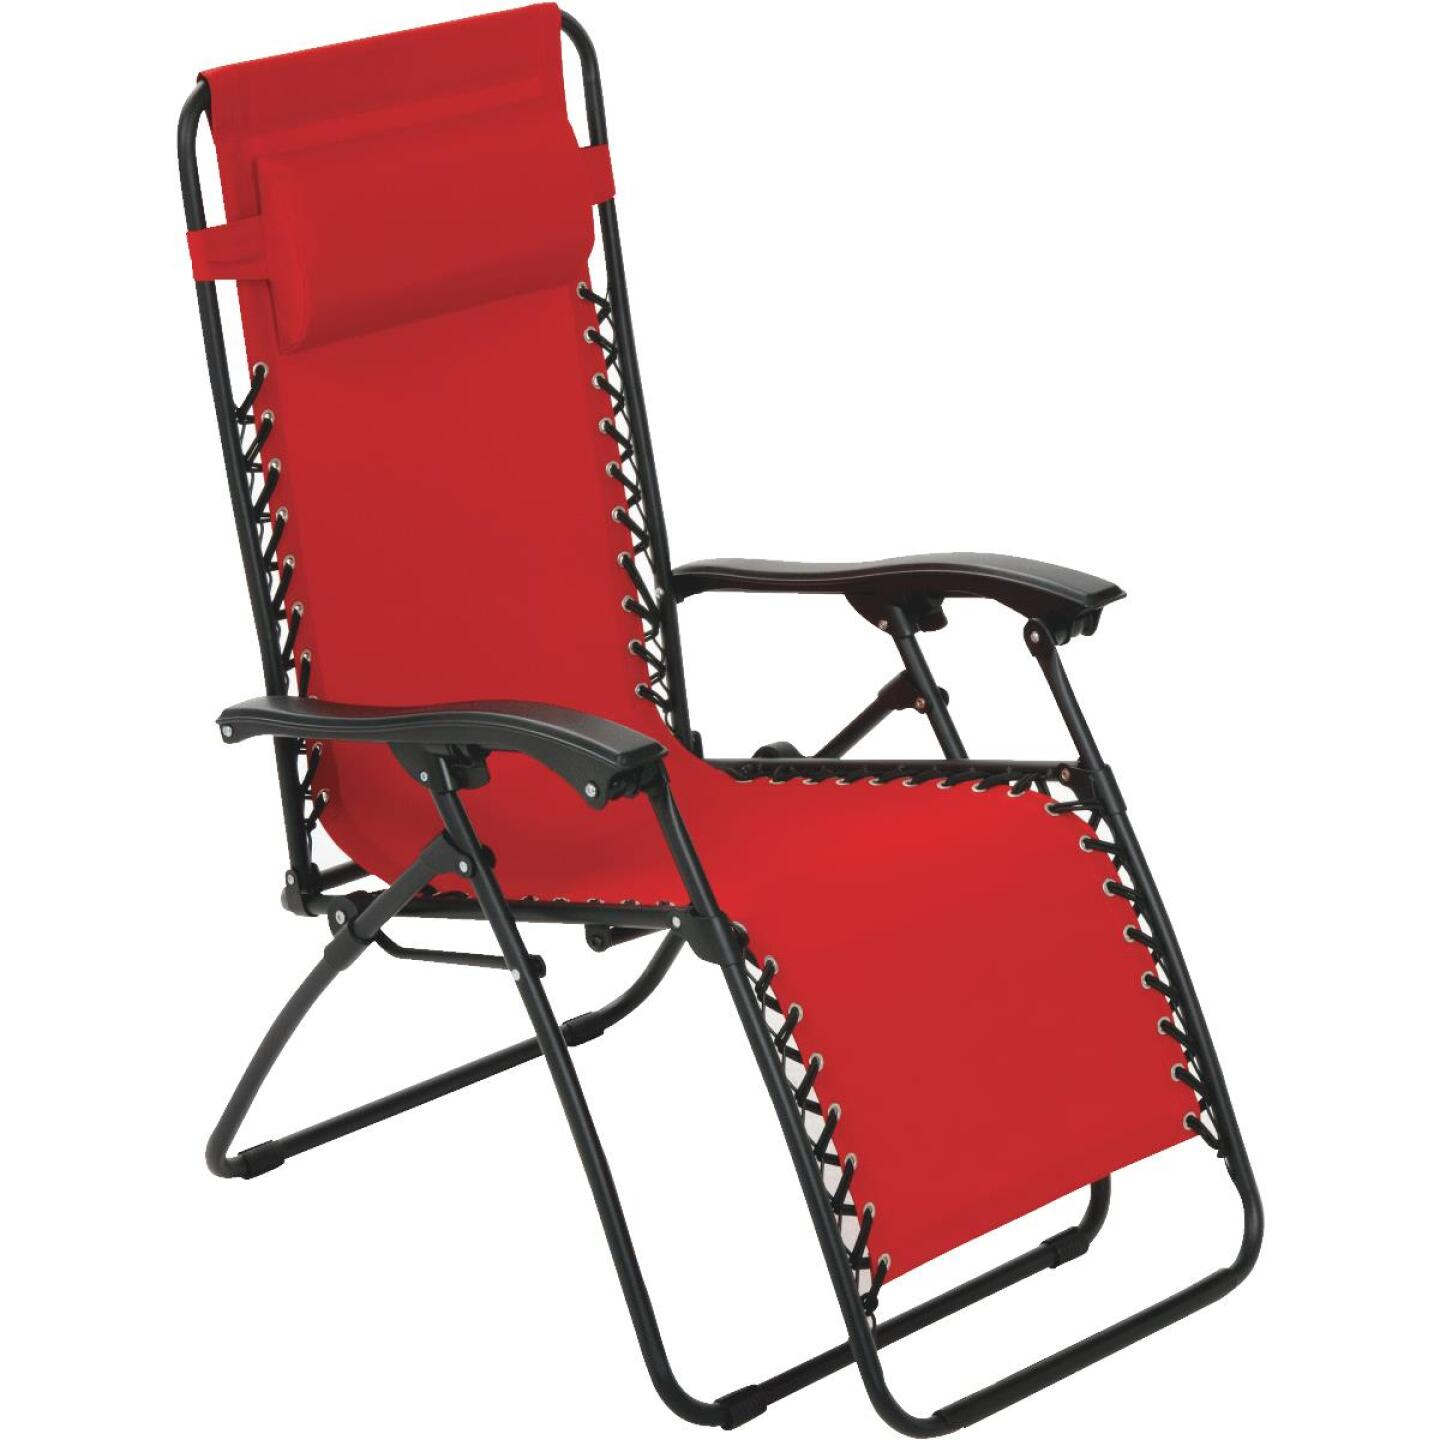 Magnificent Outdoor Expressions Zero Gravity Relaxer Red Convertible Squirreltailoven Fun Painted Chair Ideas Images Squirreltailovenorg